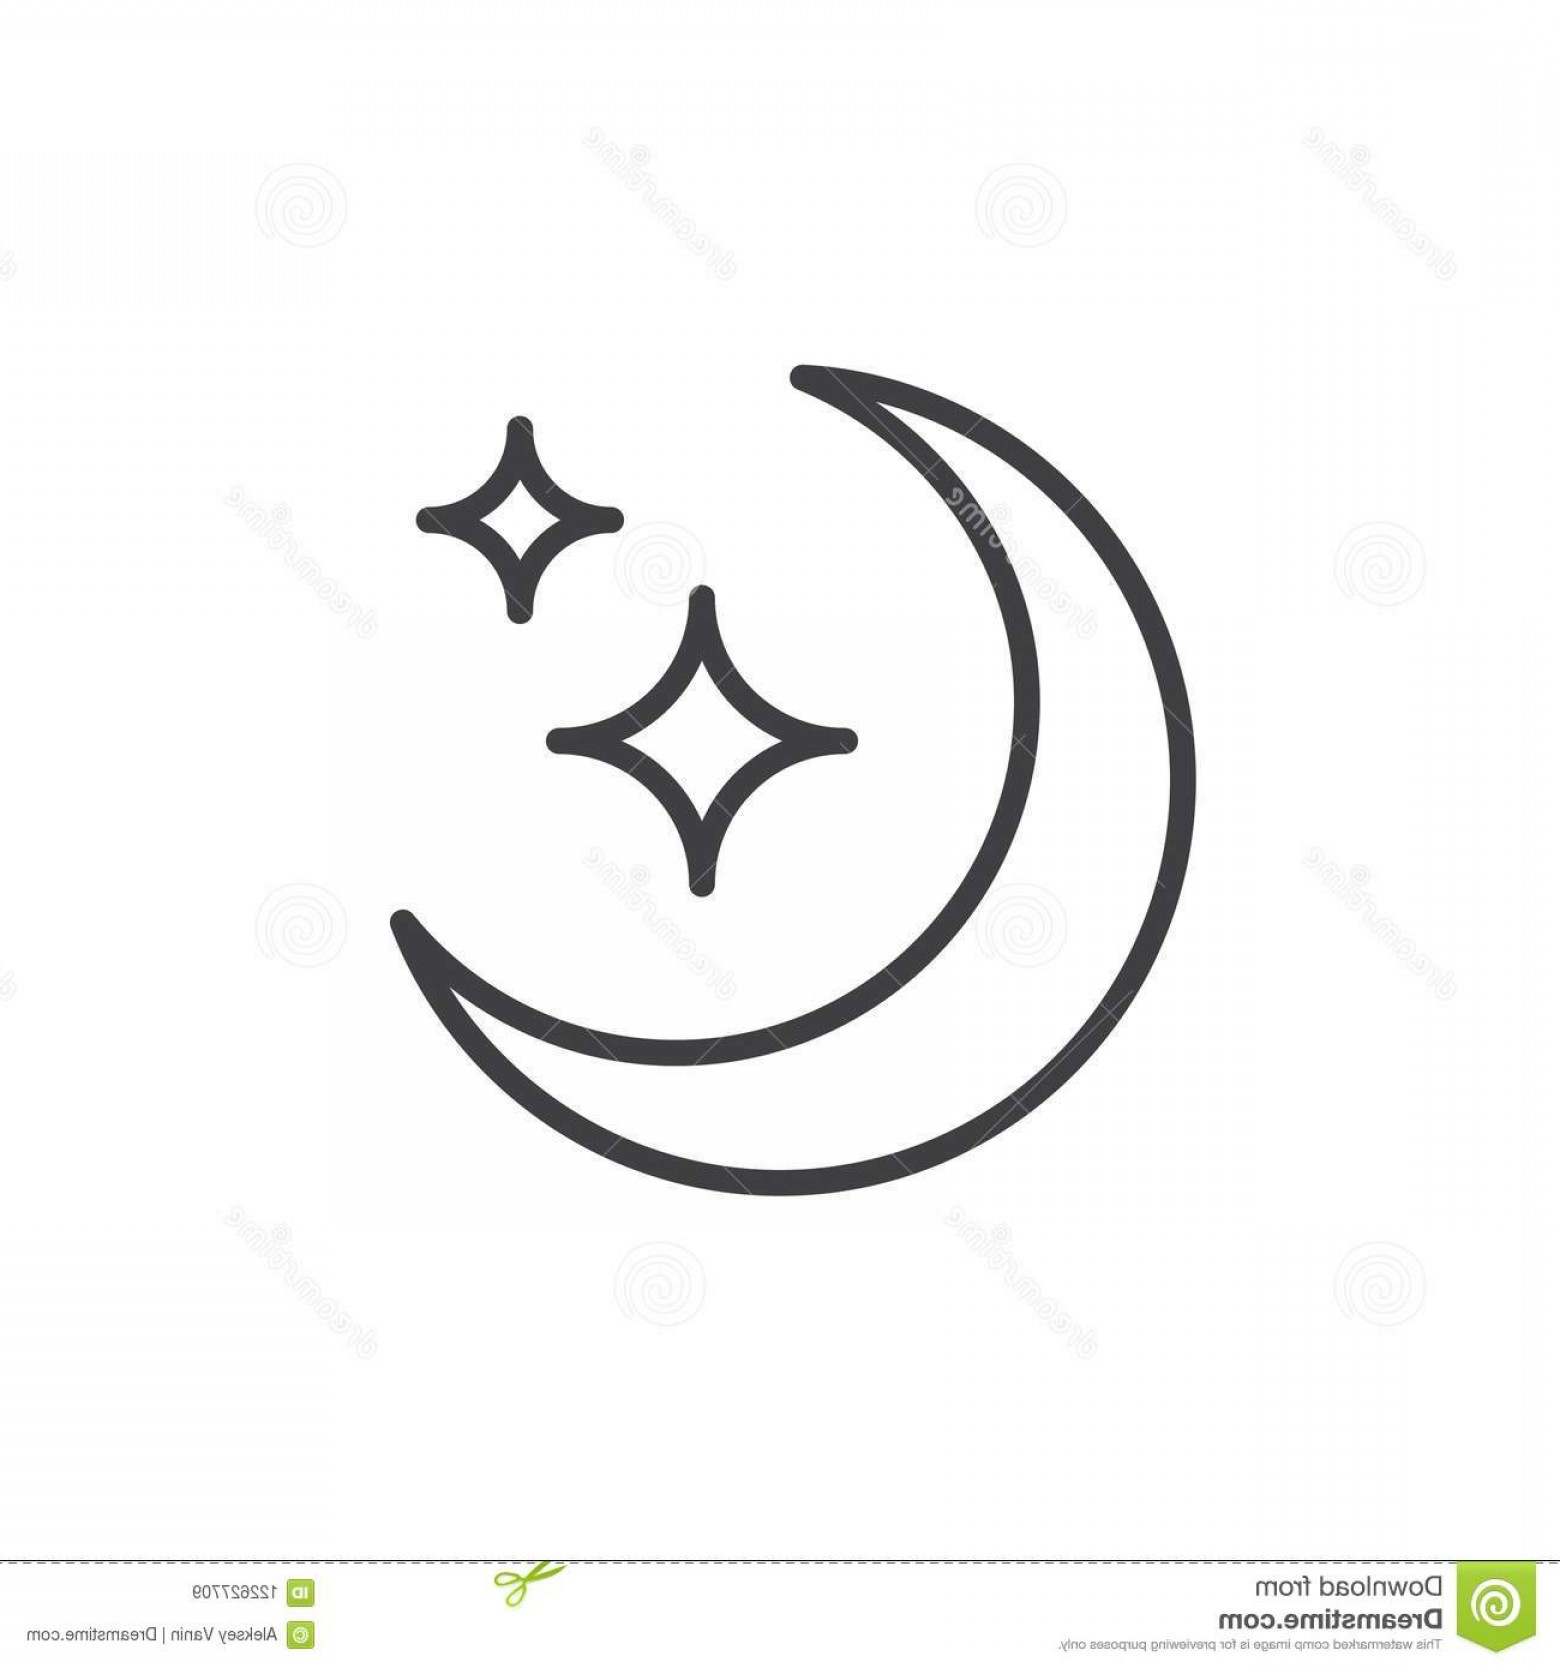 Simple Moon Vector Art: Moon Stars Outline Icon Linear Style Sign Mobile Concept Web Design Crescent Star Simple Line Vector Icon Night Image